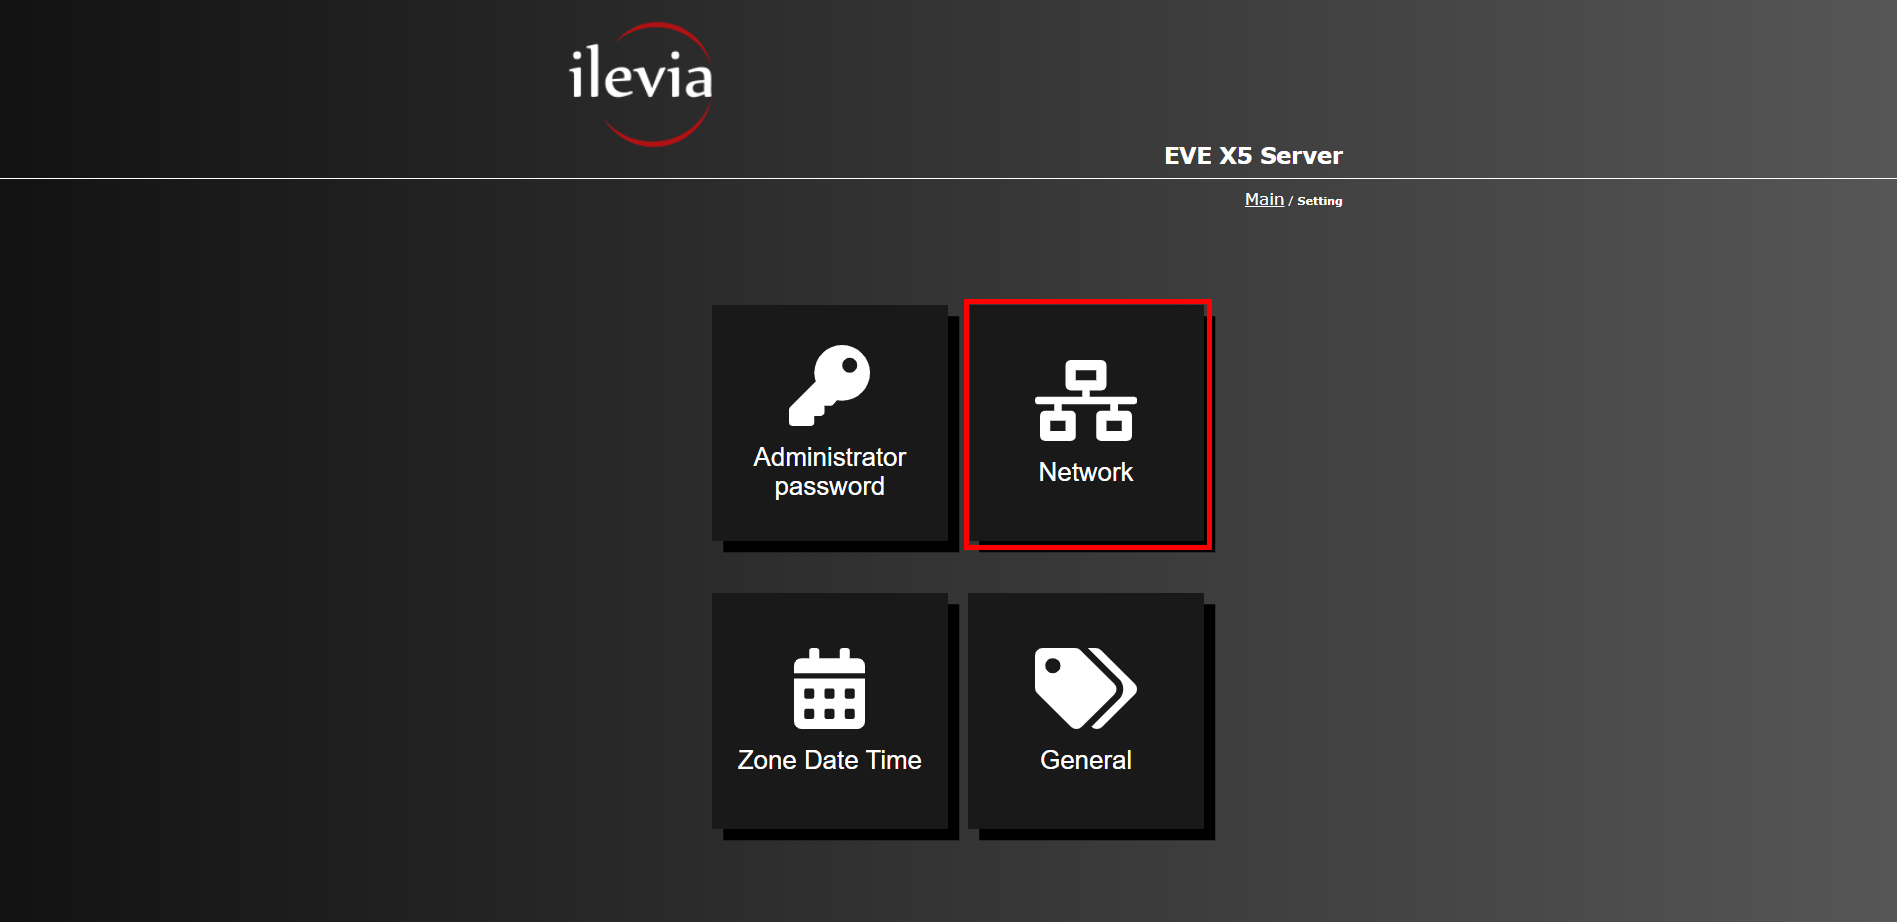 How to reach the network configuration settings of the device inside the web interface of the EVE server